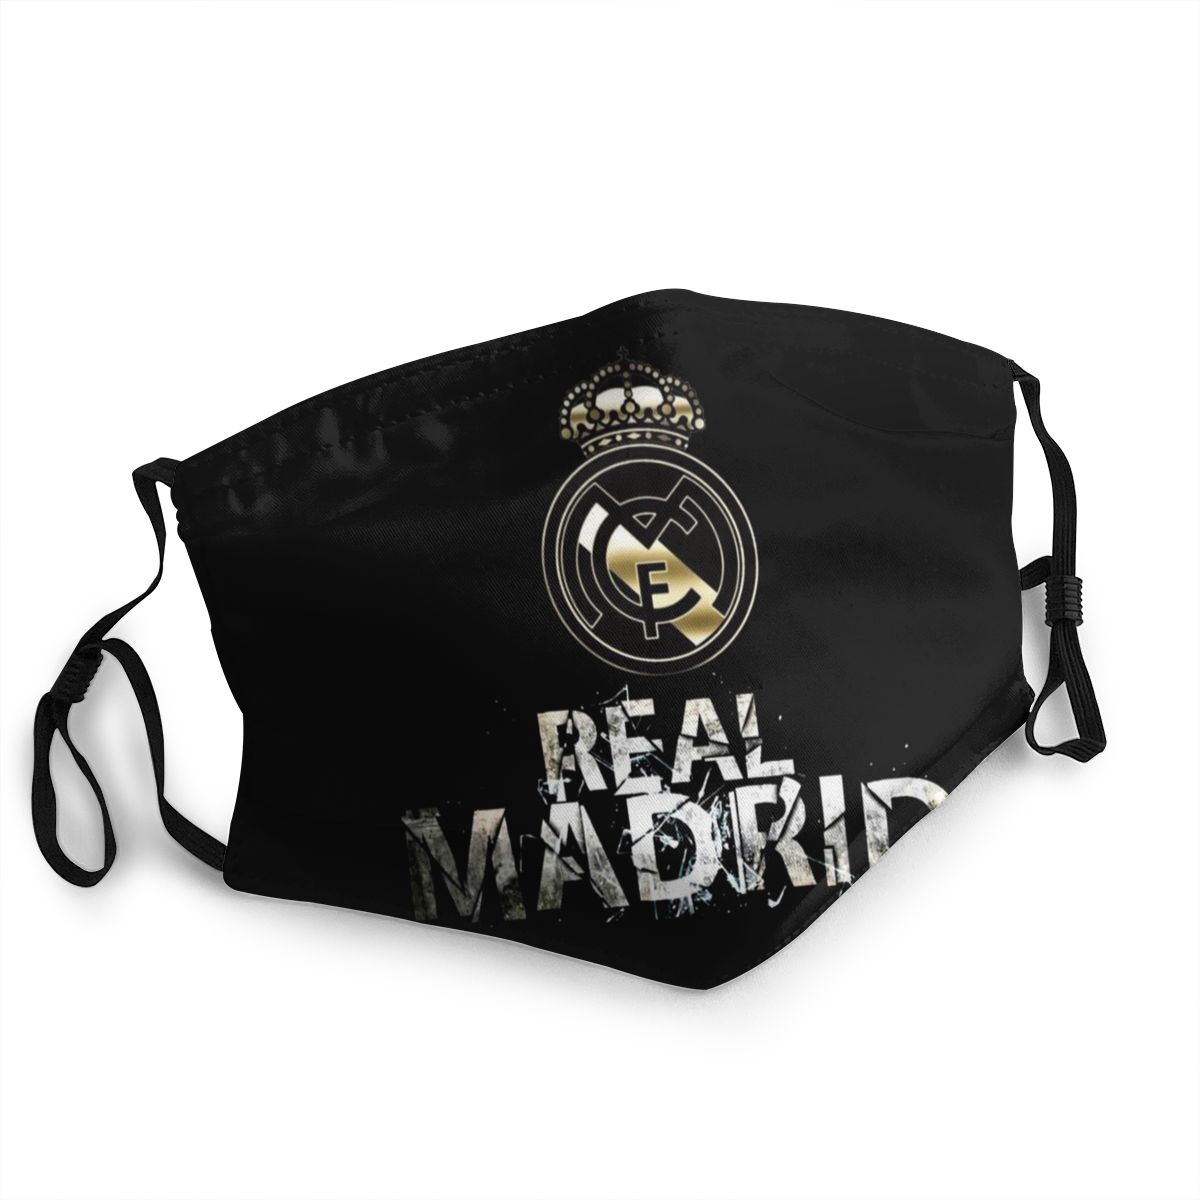 Cool Logo Mask Funny Mouth Mask  Real Madrided High Quality